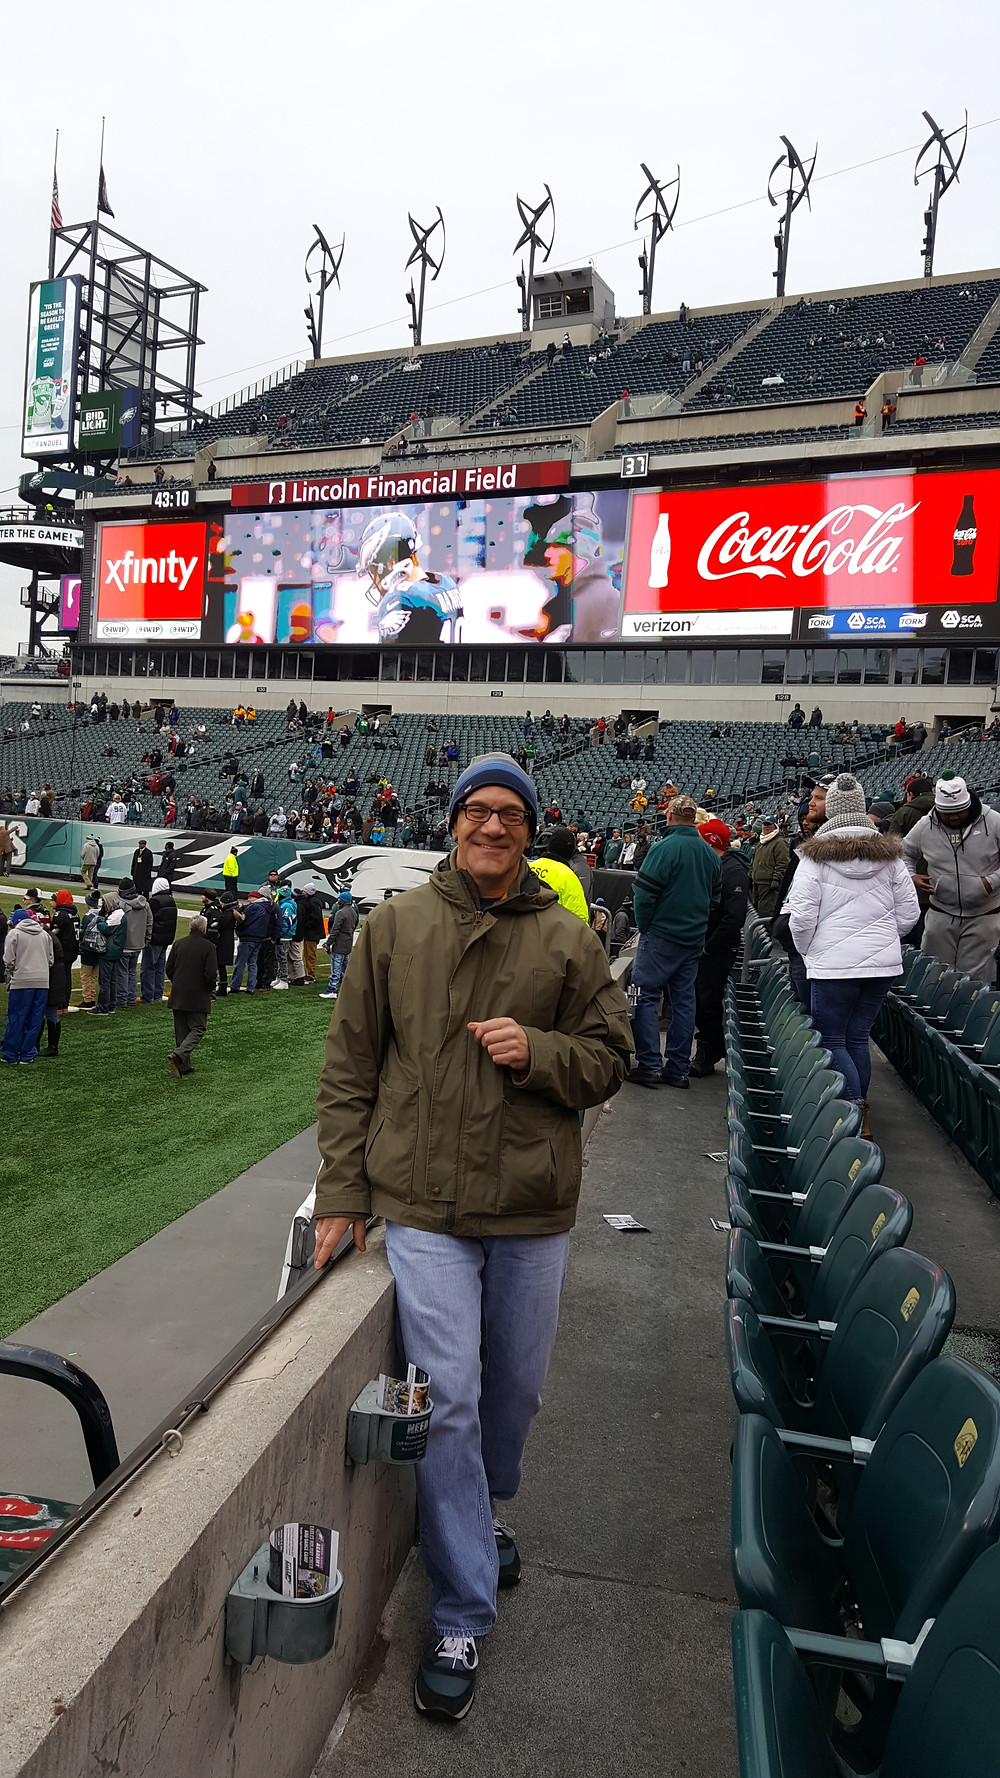 Lincoln Financial Field Review